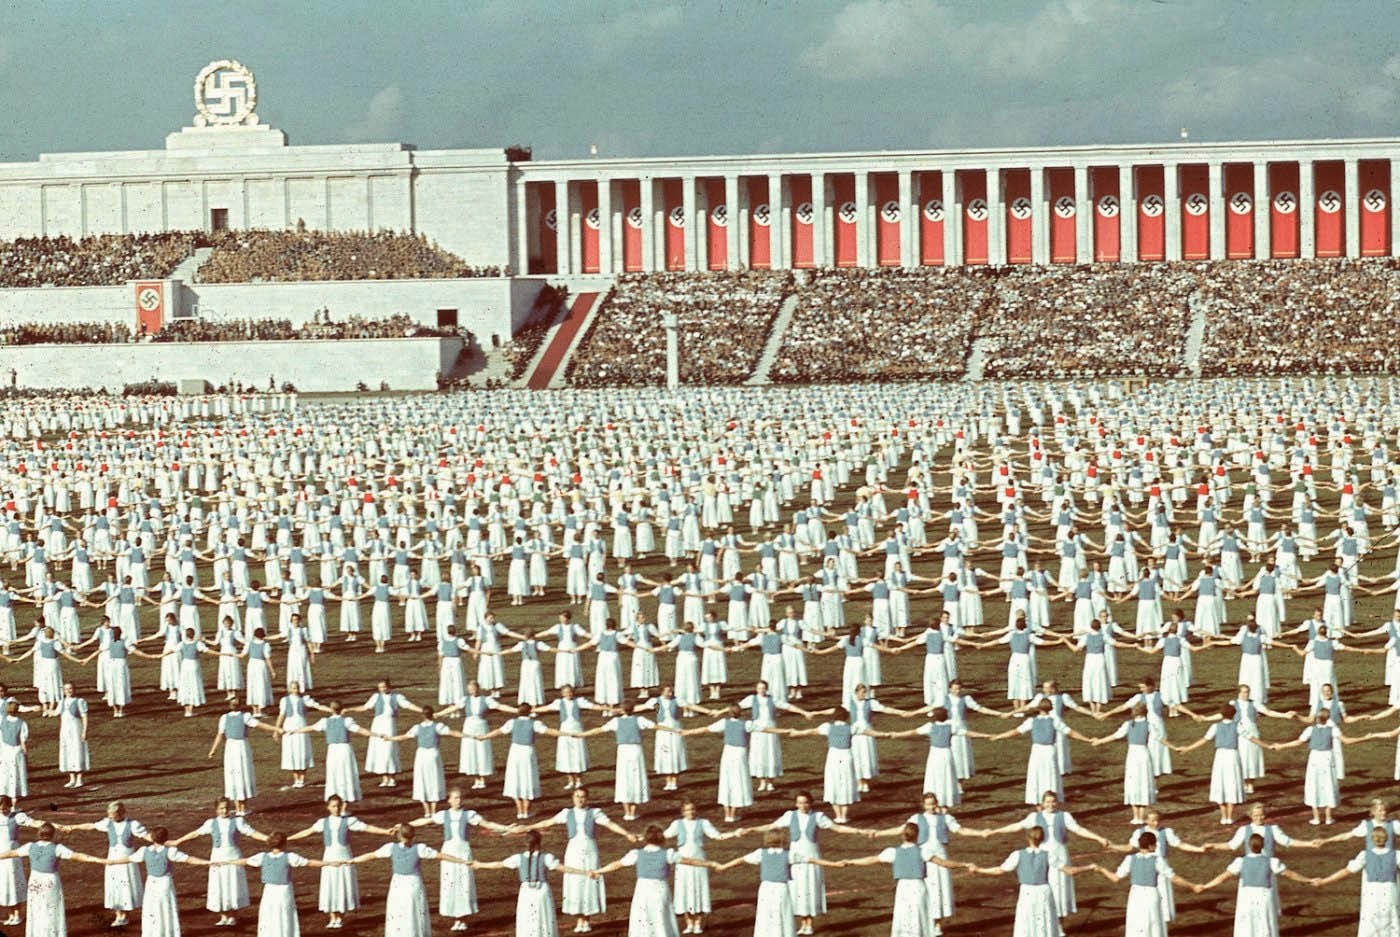 El arte del ceremonial en la Alemania nazi (color)